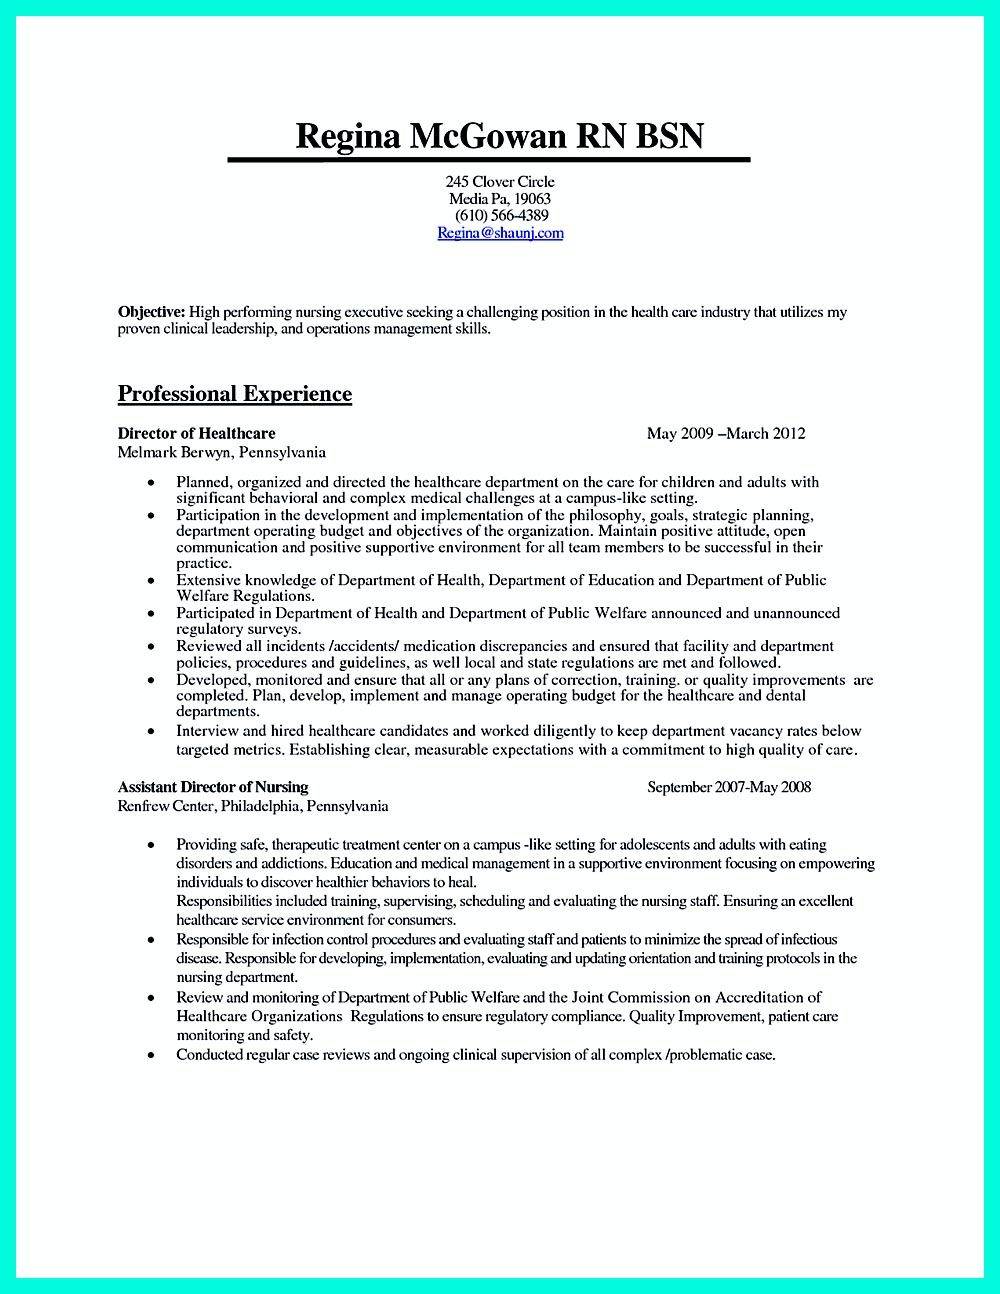 Some samples of CRNA resume here are useful for you who want to get